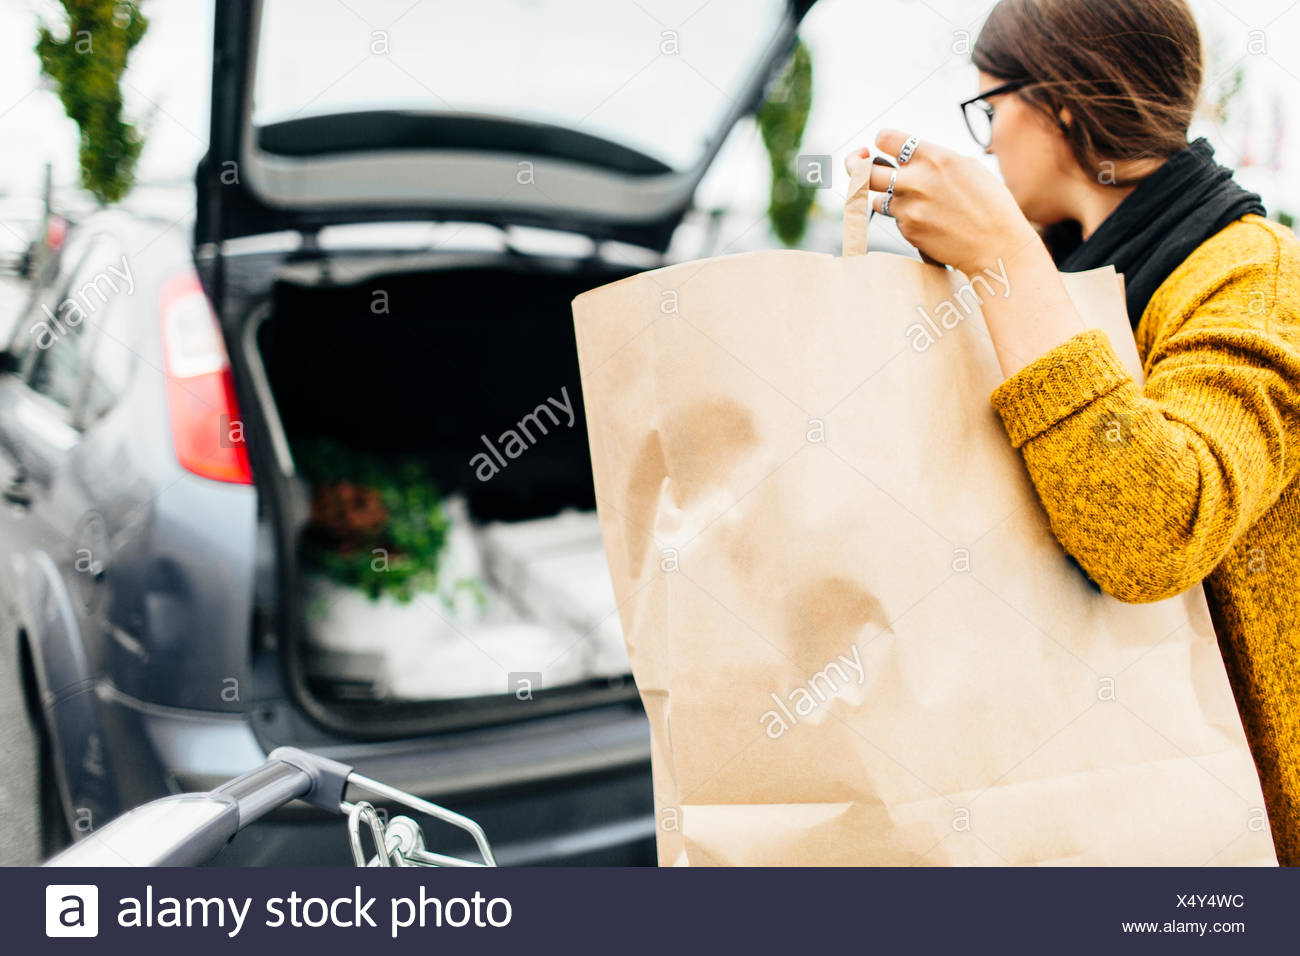 Young woman loading shopping bag into trunk of car - Stock Image